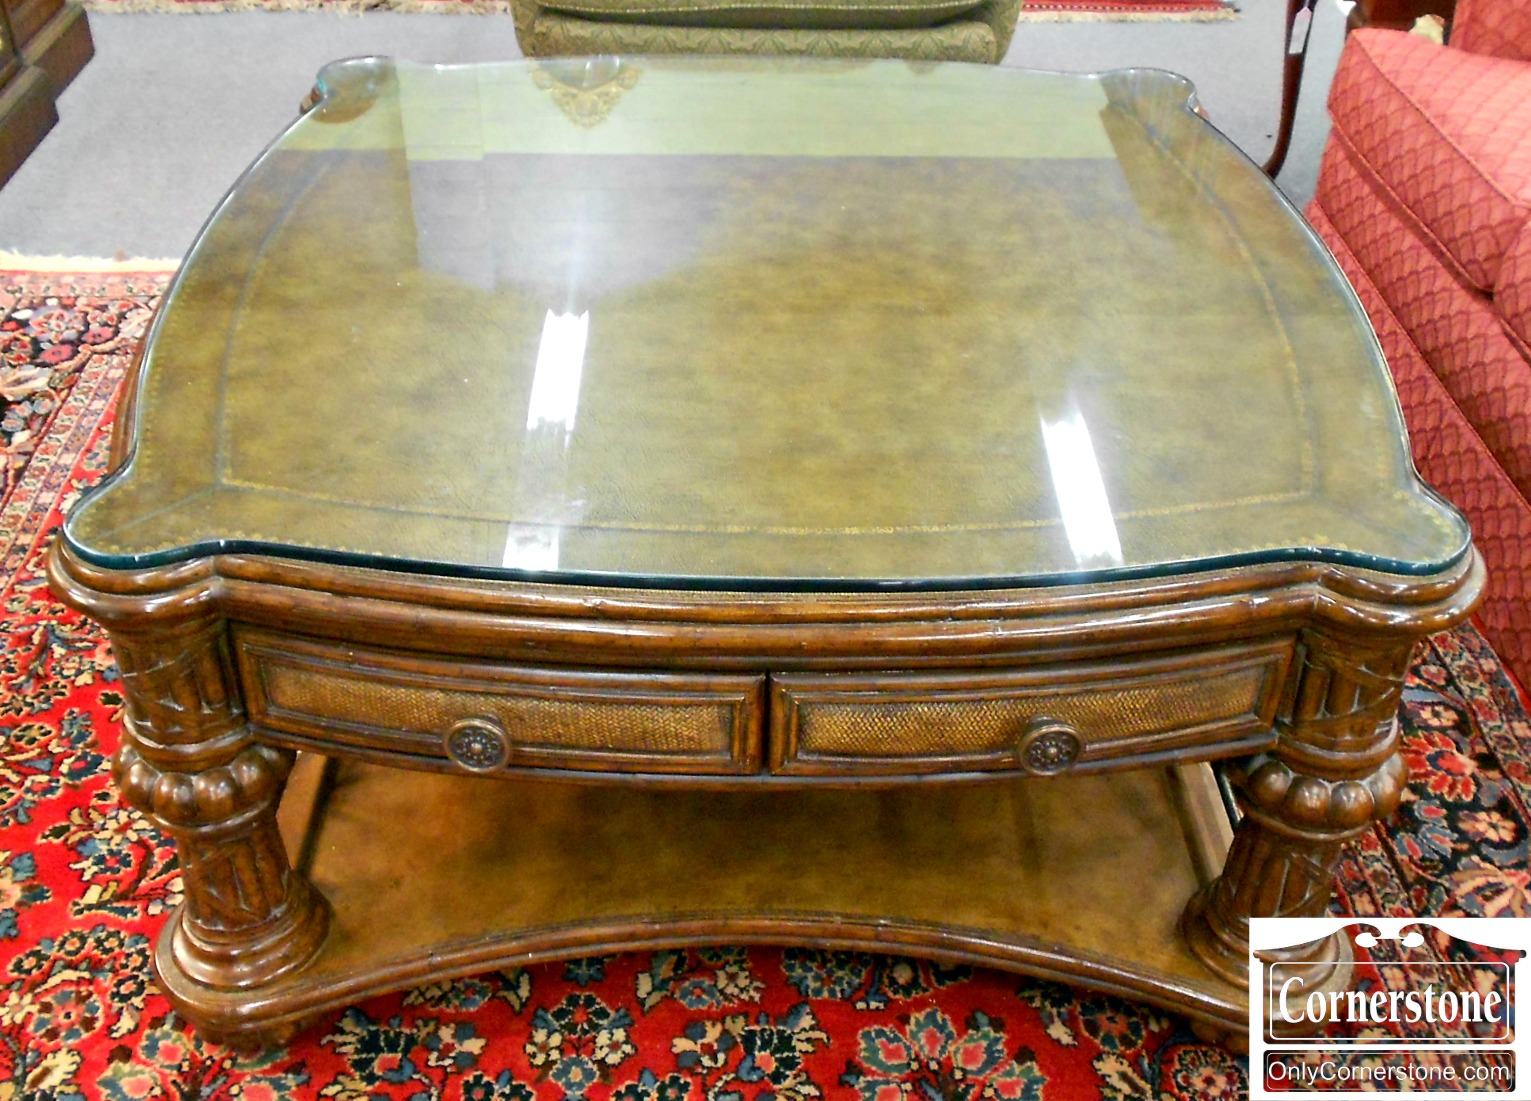 3959-911 Leather Top Coffee Table with Glass Top